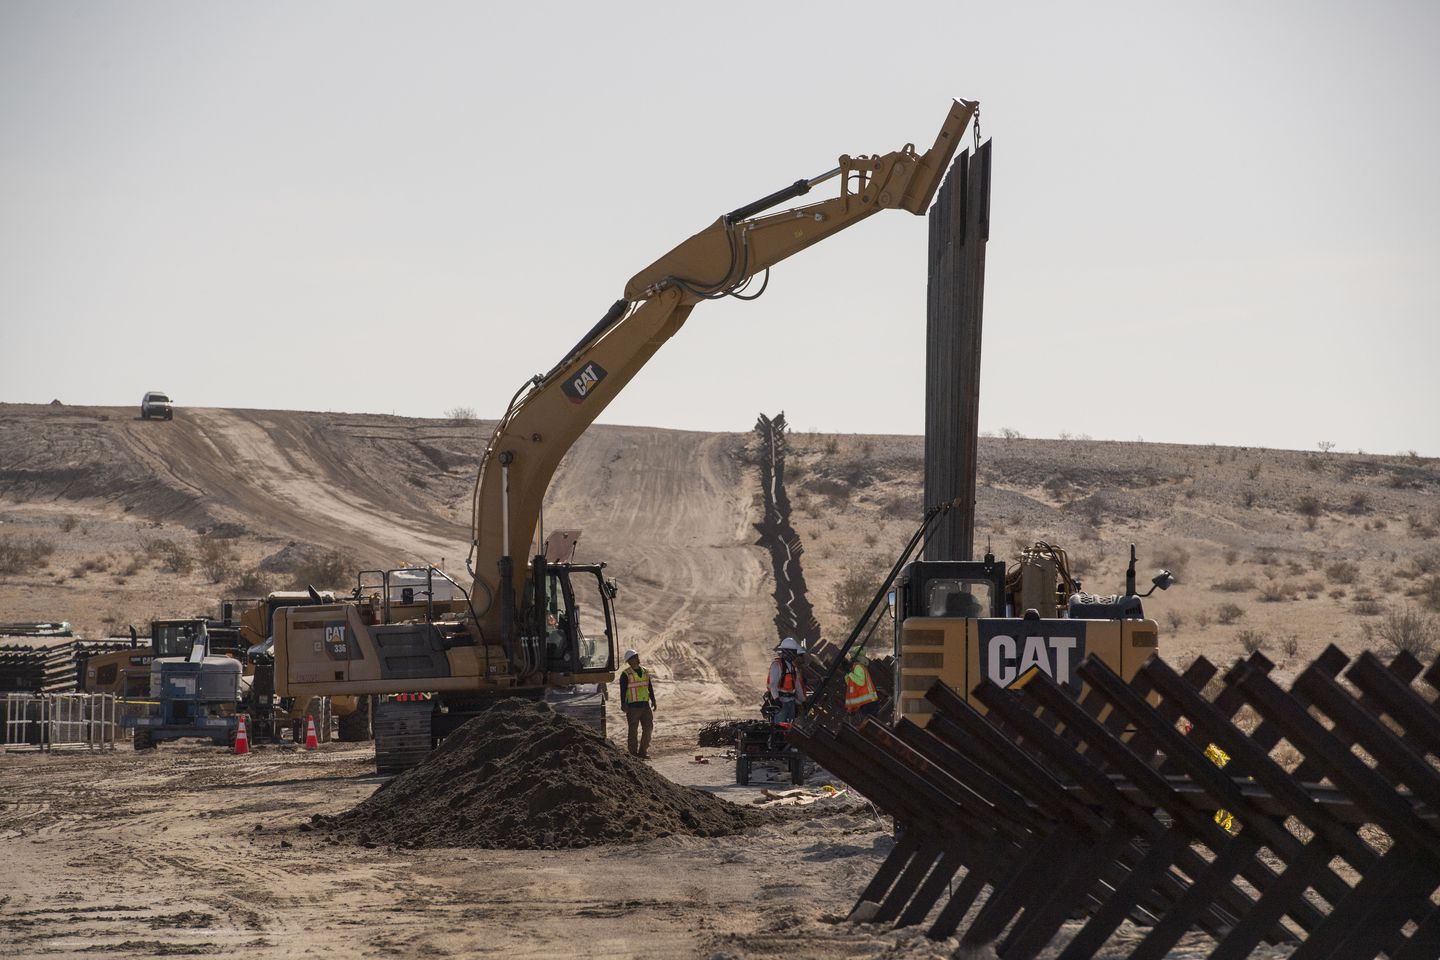 Construction in August along the U.S. border with Mexico, where the new border barrier will replace old fencing in Calexico, Calif. (Carolyn Van Houten/The Washington Post)